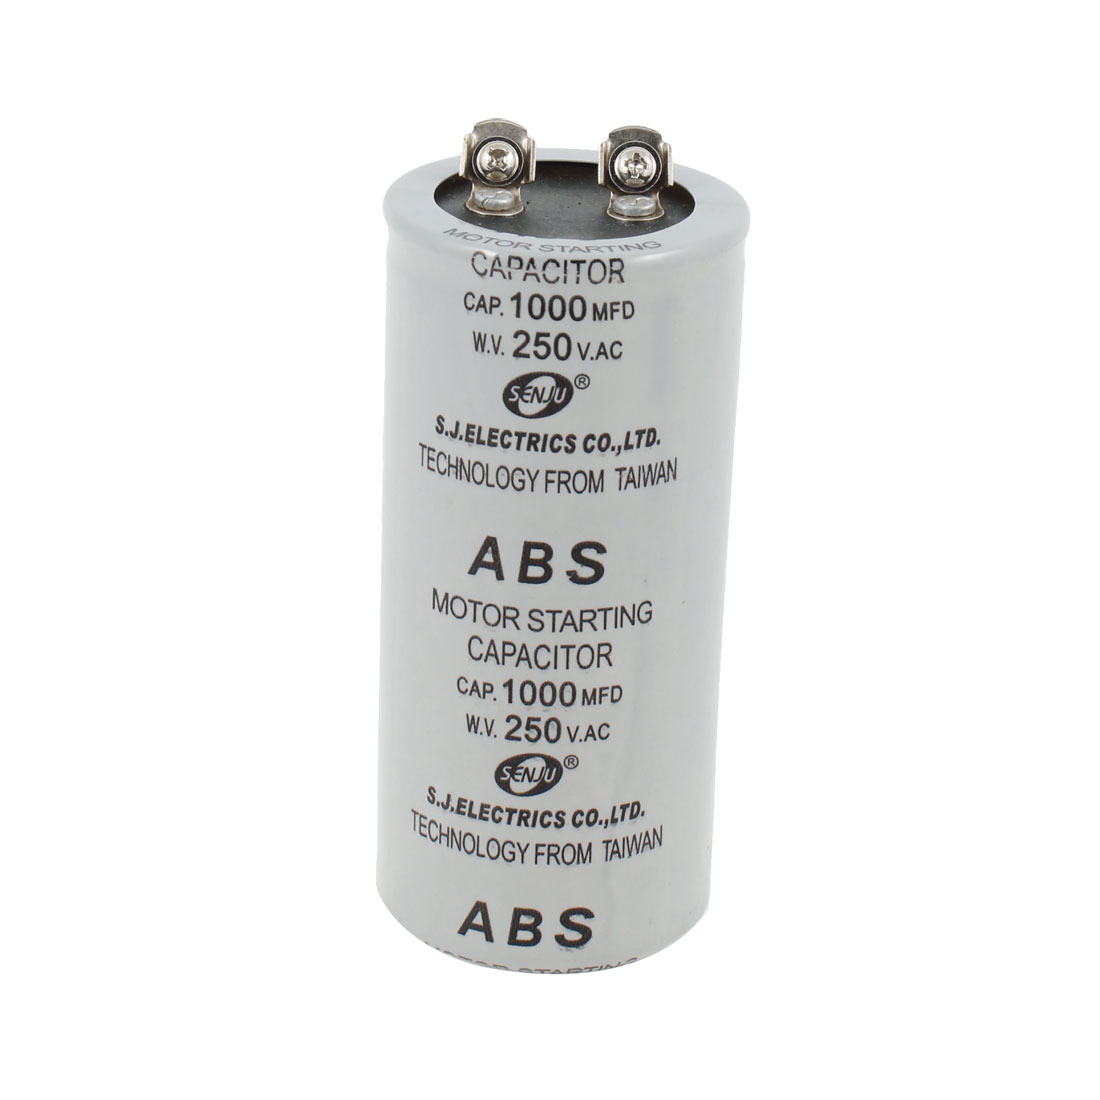 Screw Terminals Motor Starting Capacitor 1000MFD 1000uF 250VAC